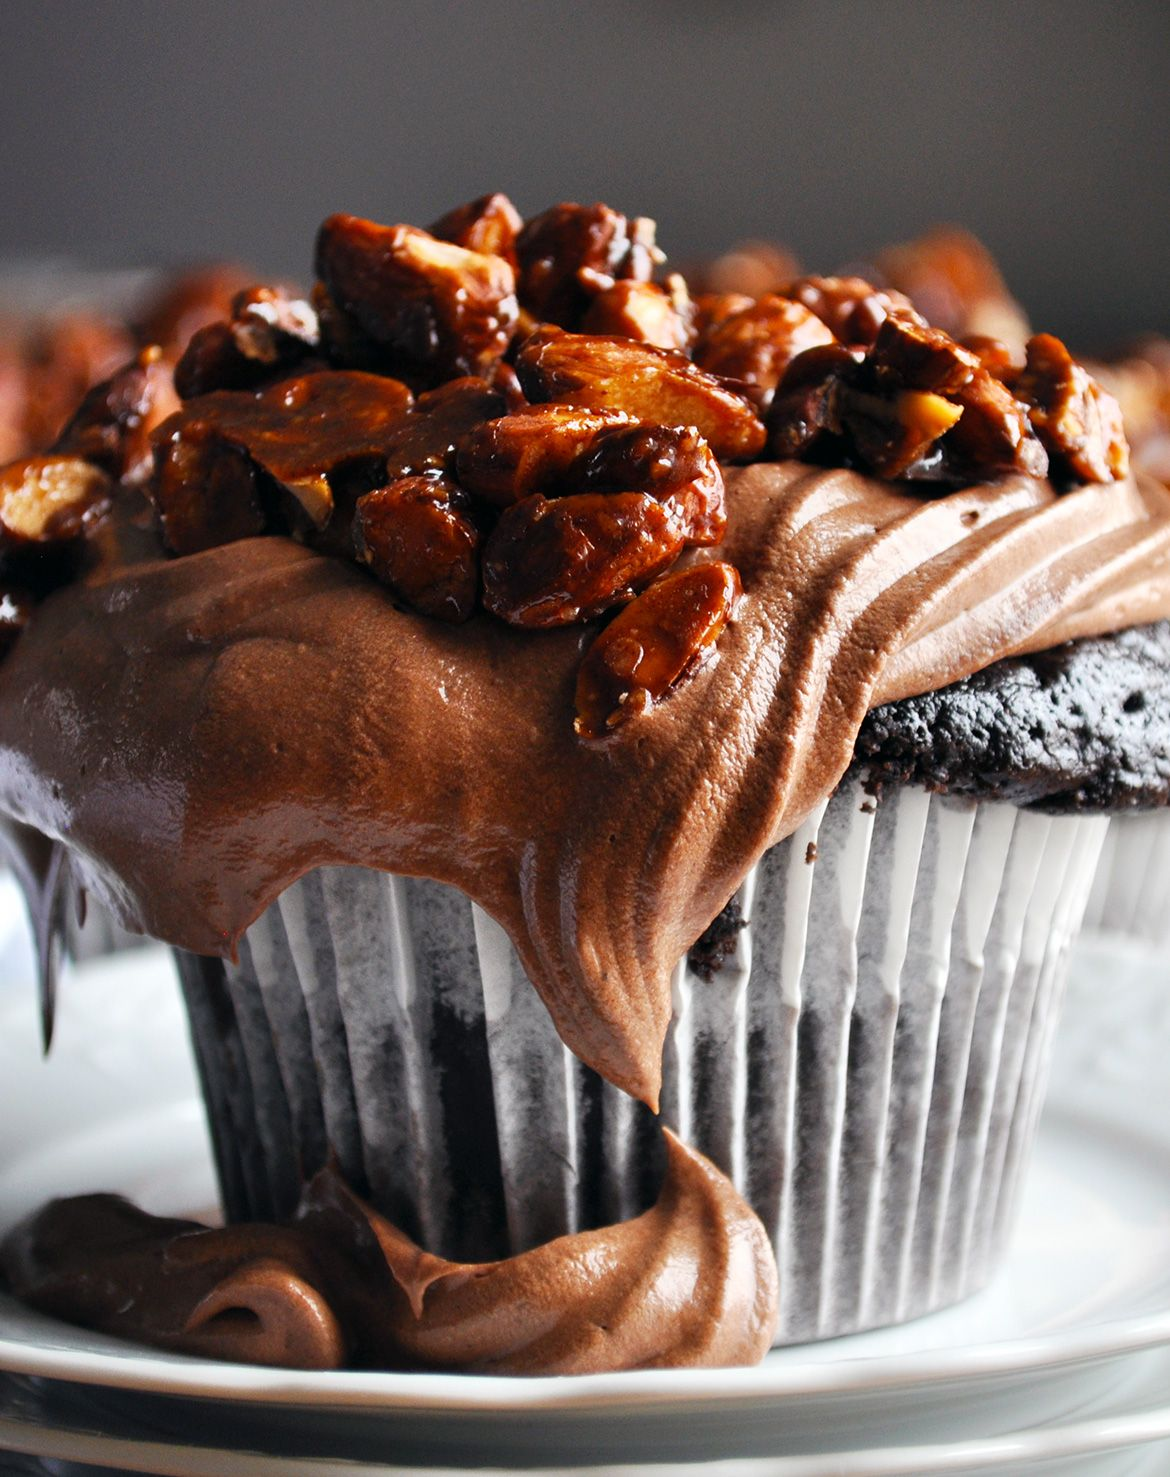 Ultra moist chocolate cupcake recipe with amaretto pastry cream & almond pralines.